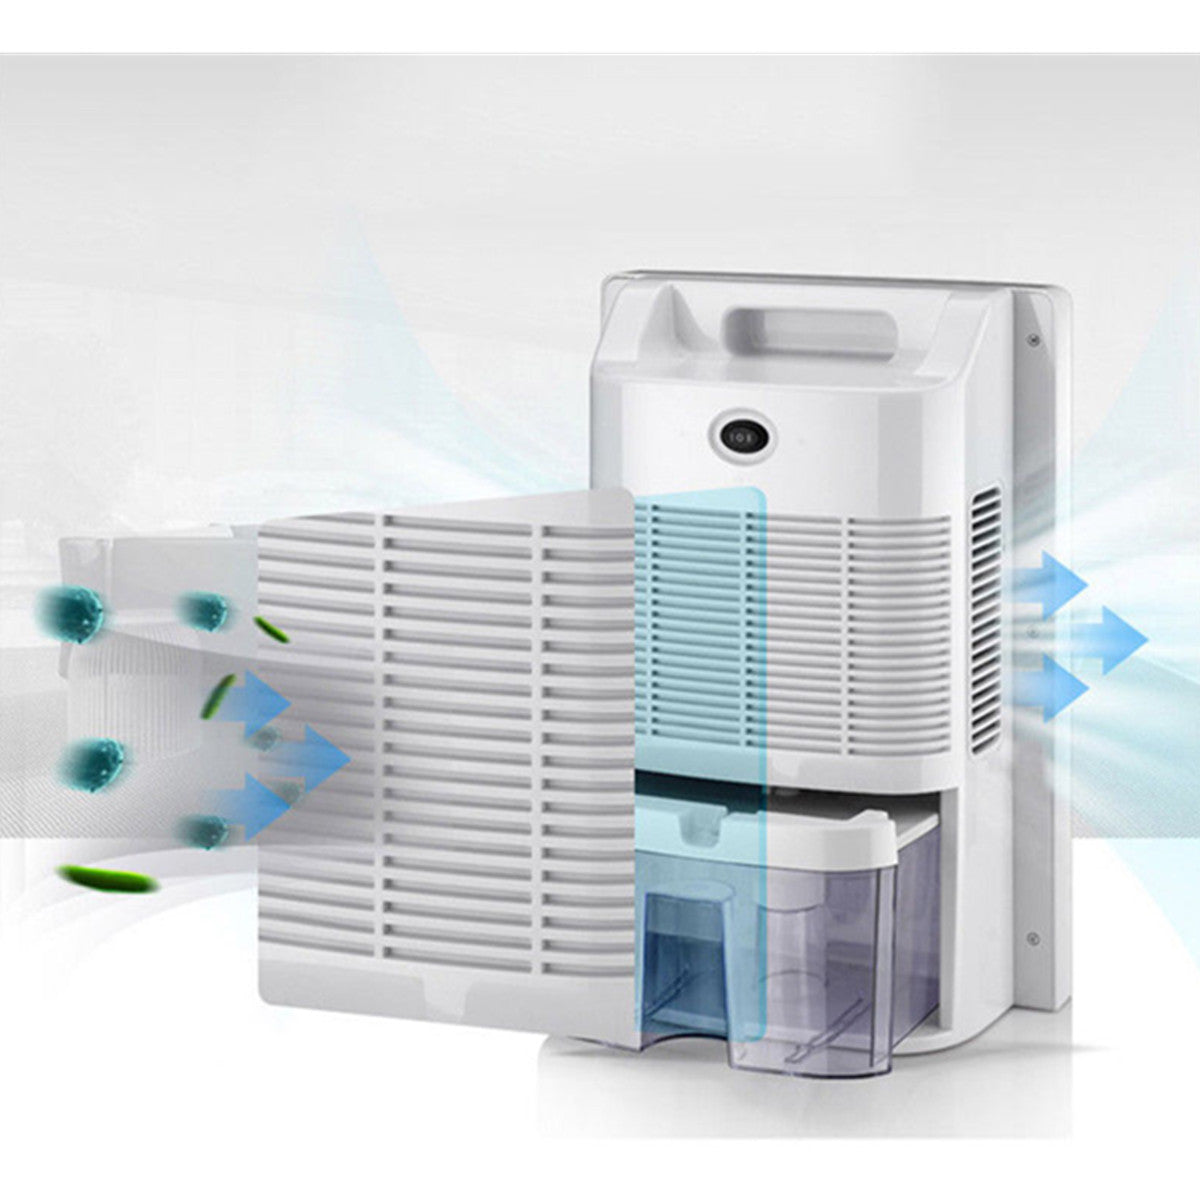 cozyrex,Portable Home Dehumidifier Mute - Bedroom Air Purifier Mini Moisture - Absorption Dryer,CozyRex,